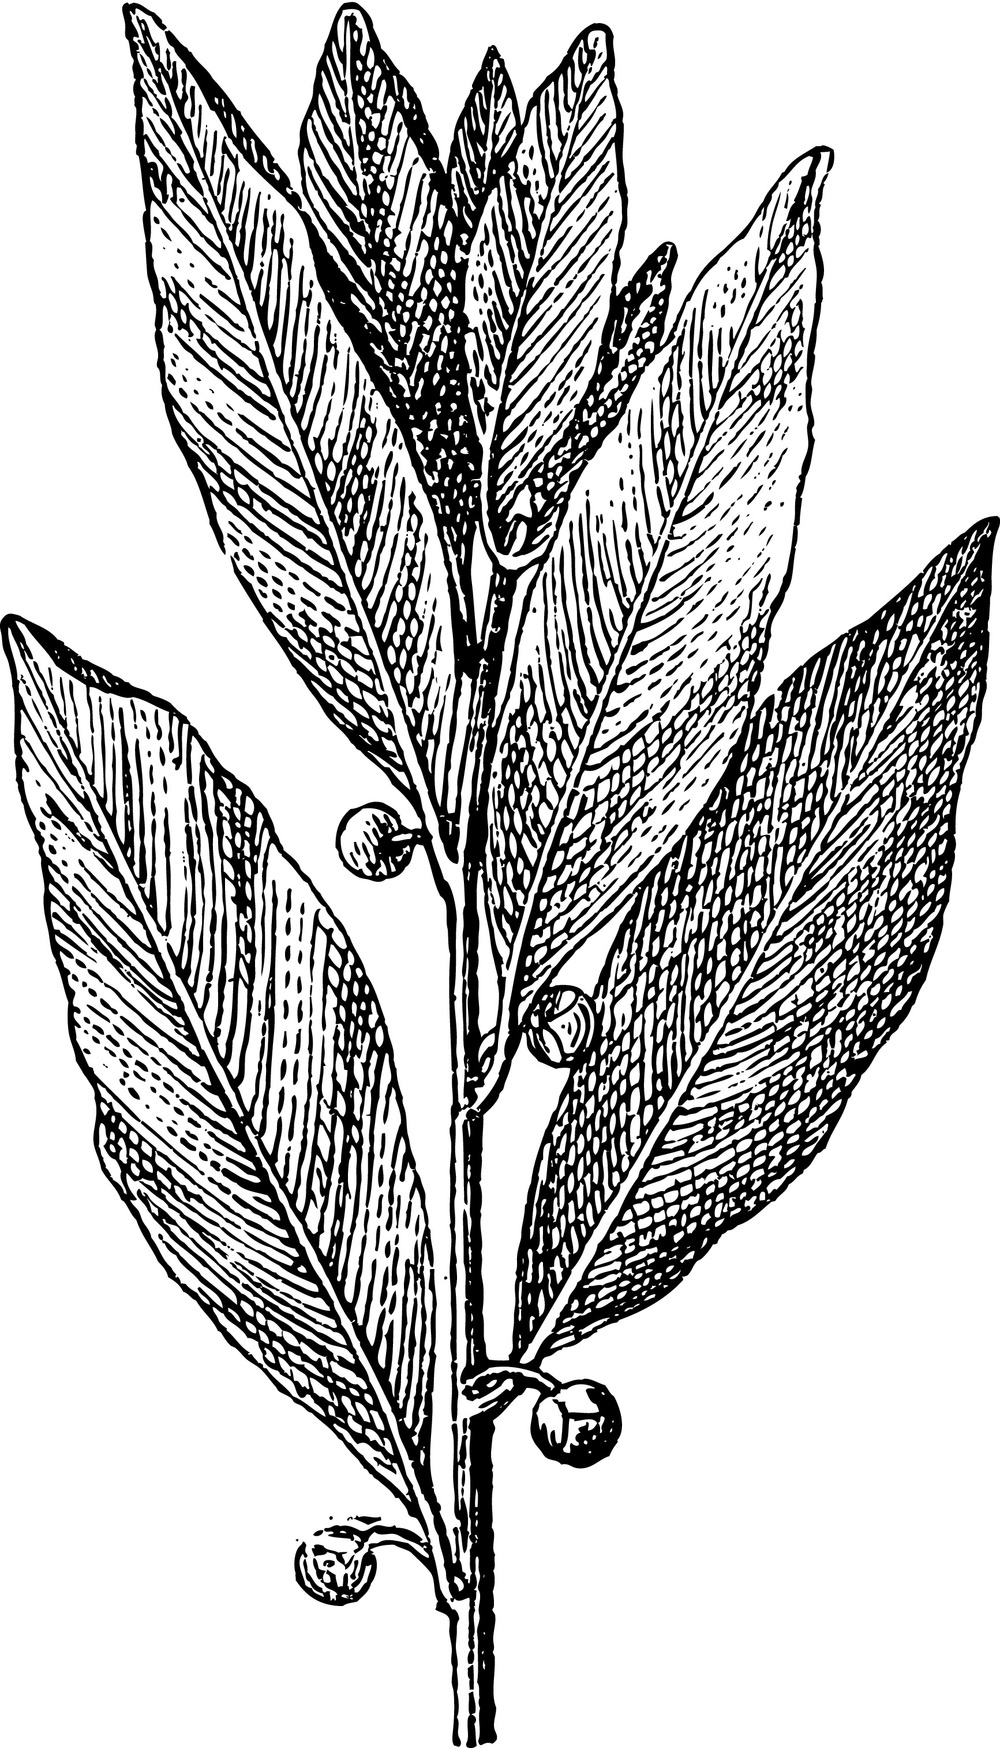 Laurus nobilis engraved illustration (1895)